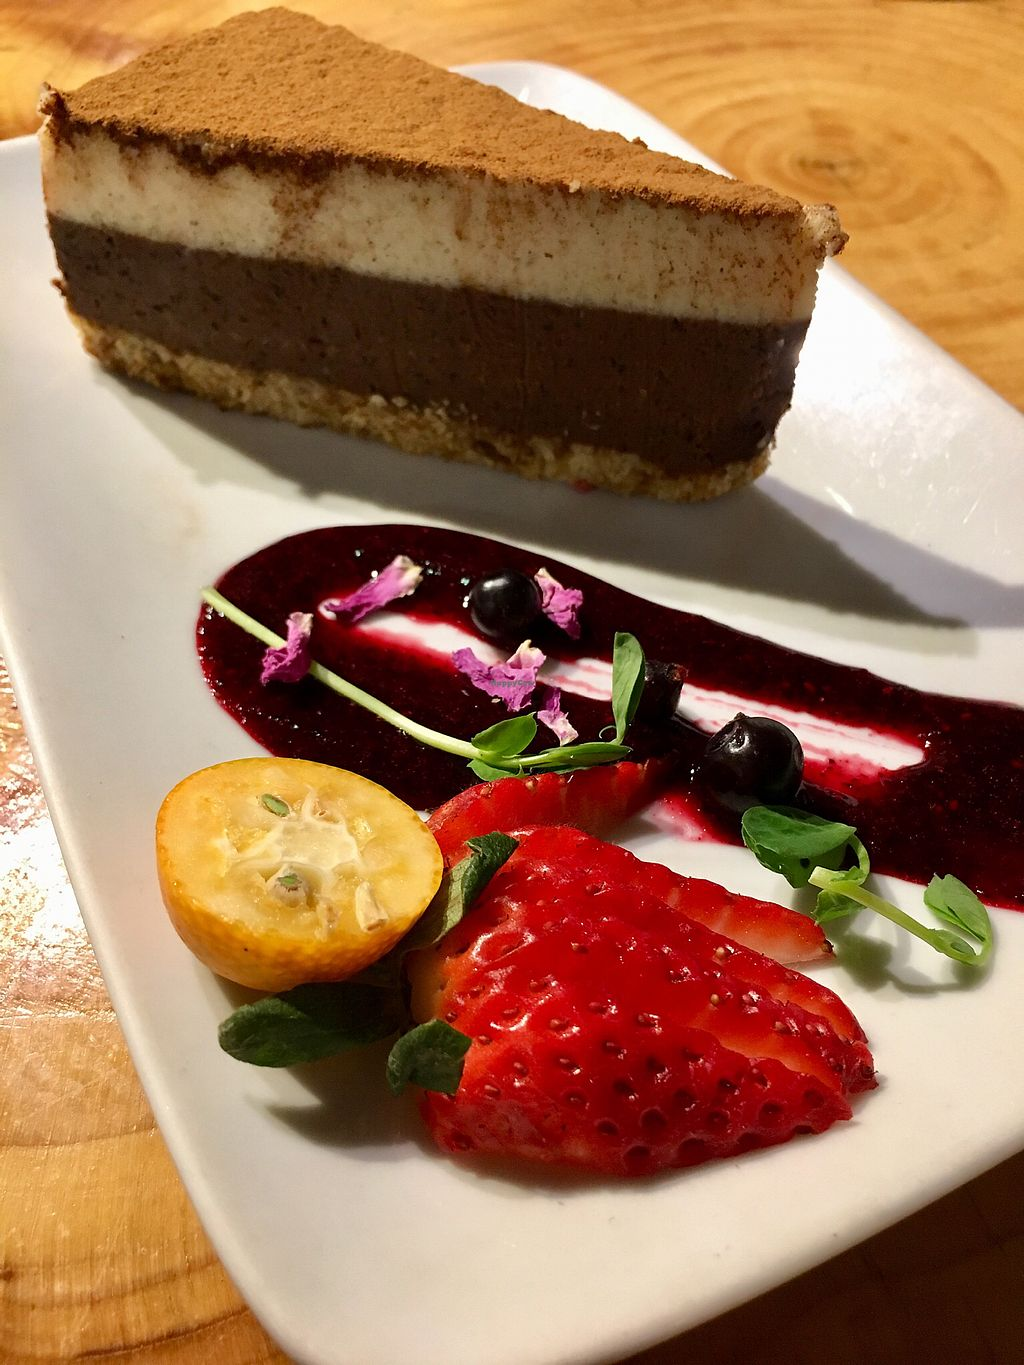 """Photo of Indigo Age Cafe  by <a href=""""/members/profile/clovely.vegan"""">clovely.vegan</a> <br/>Tiramisu <br/> February 23, 2018  - <a href='/contact/abuse/image/56700/362774'>Report</a>"""